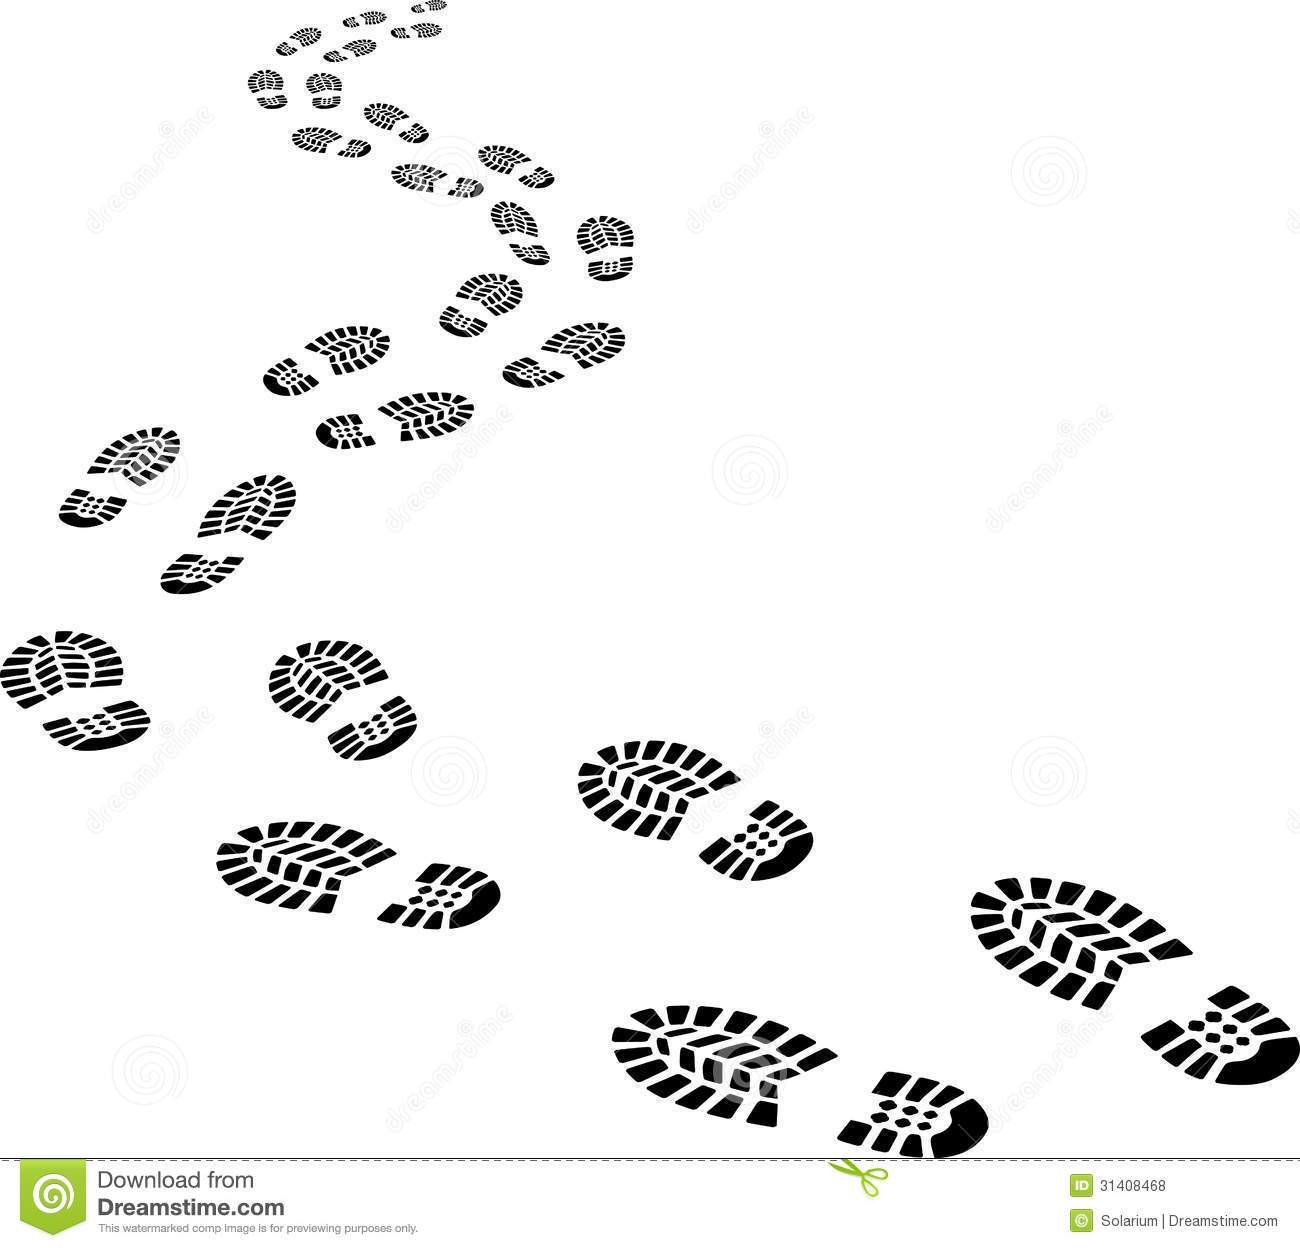 Footprints in the snow clipart 1 » Clipart Portal.